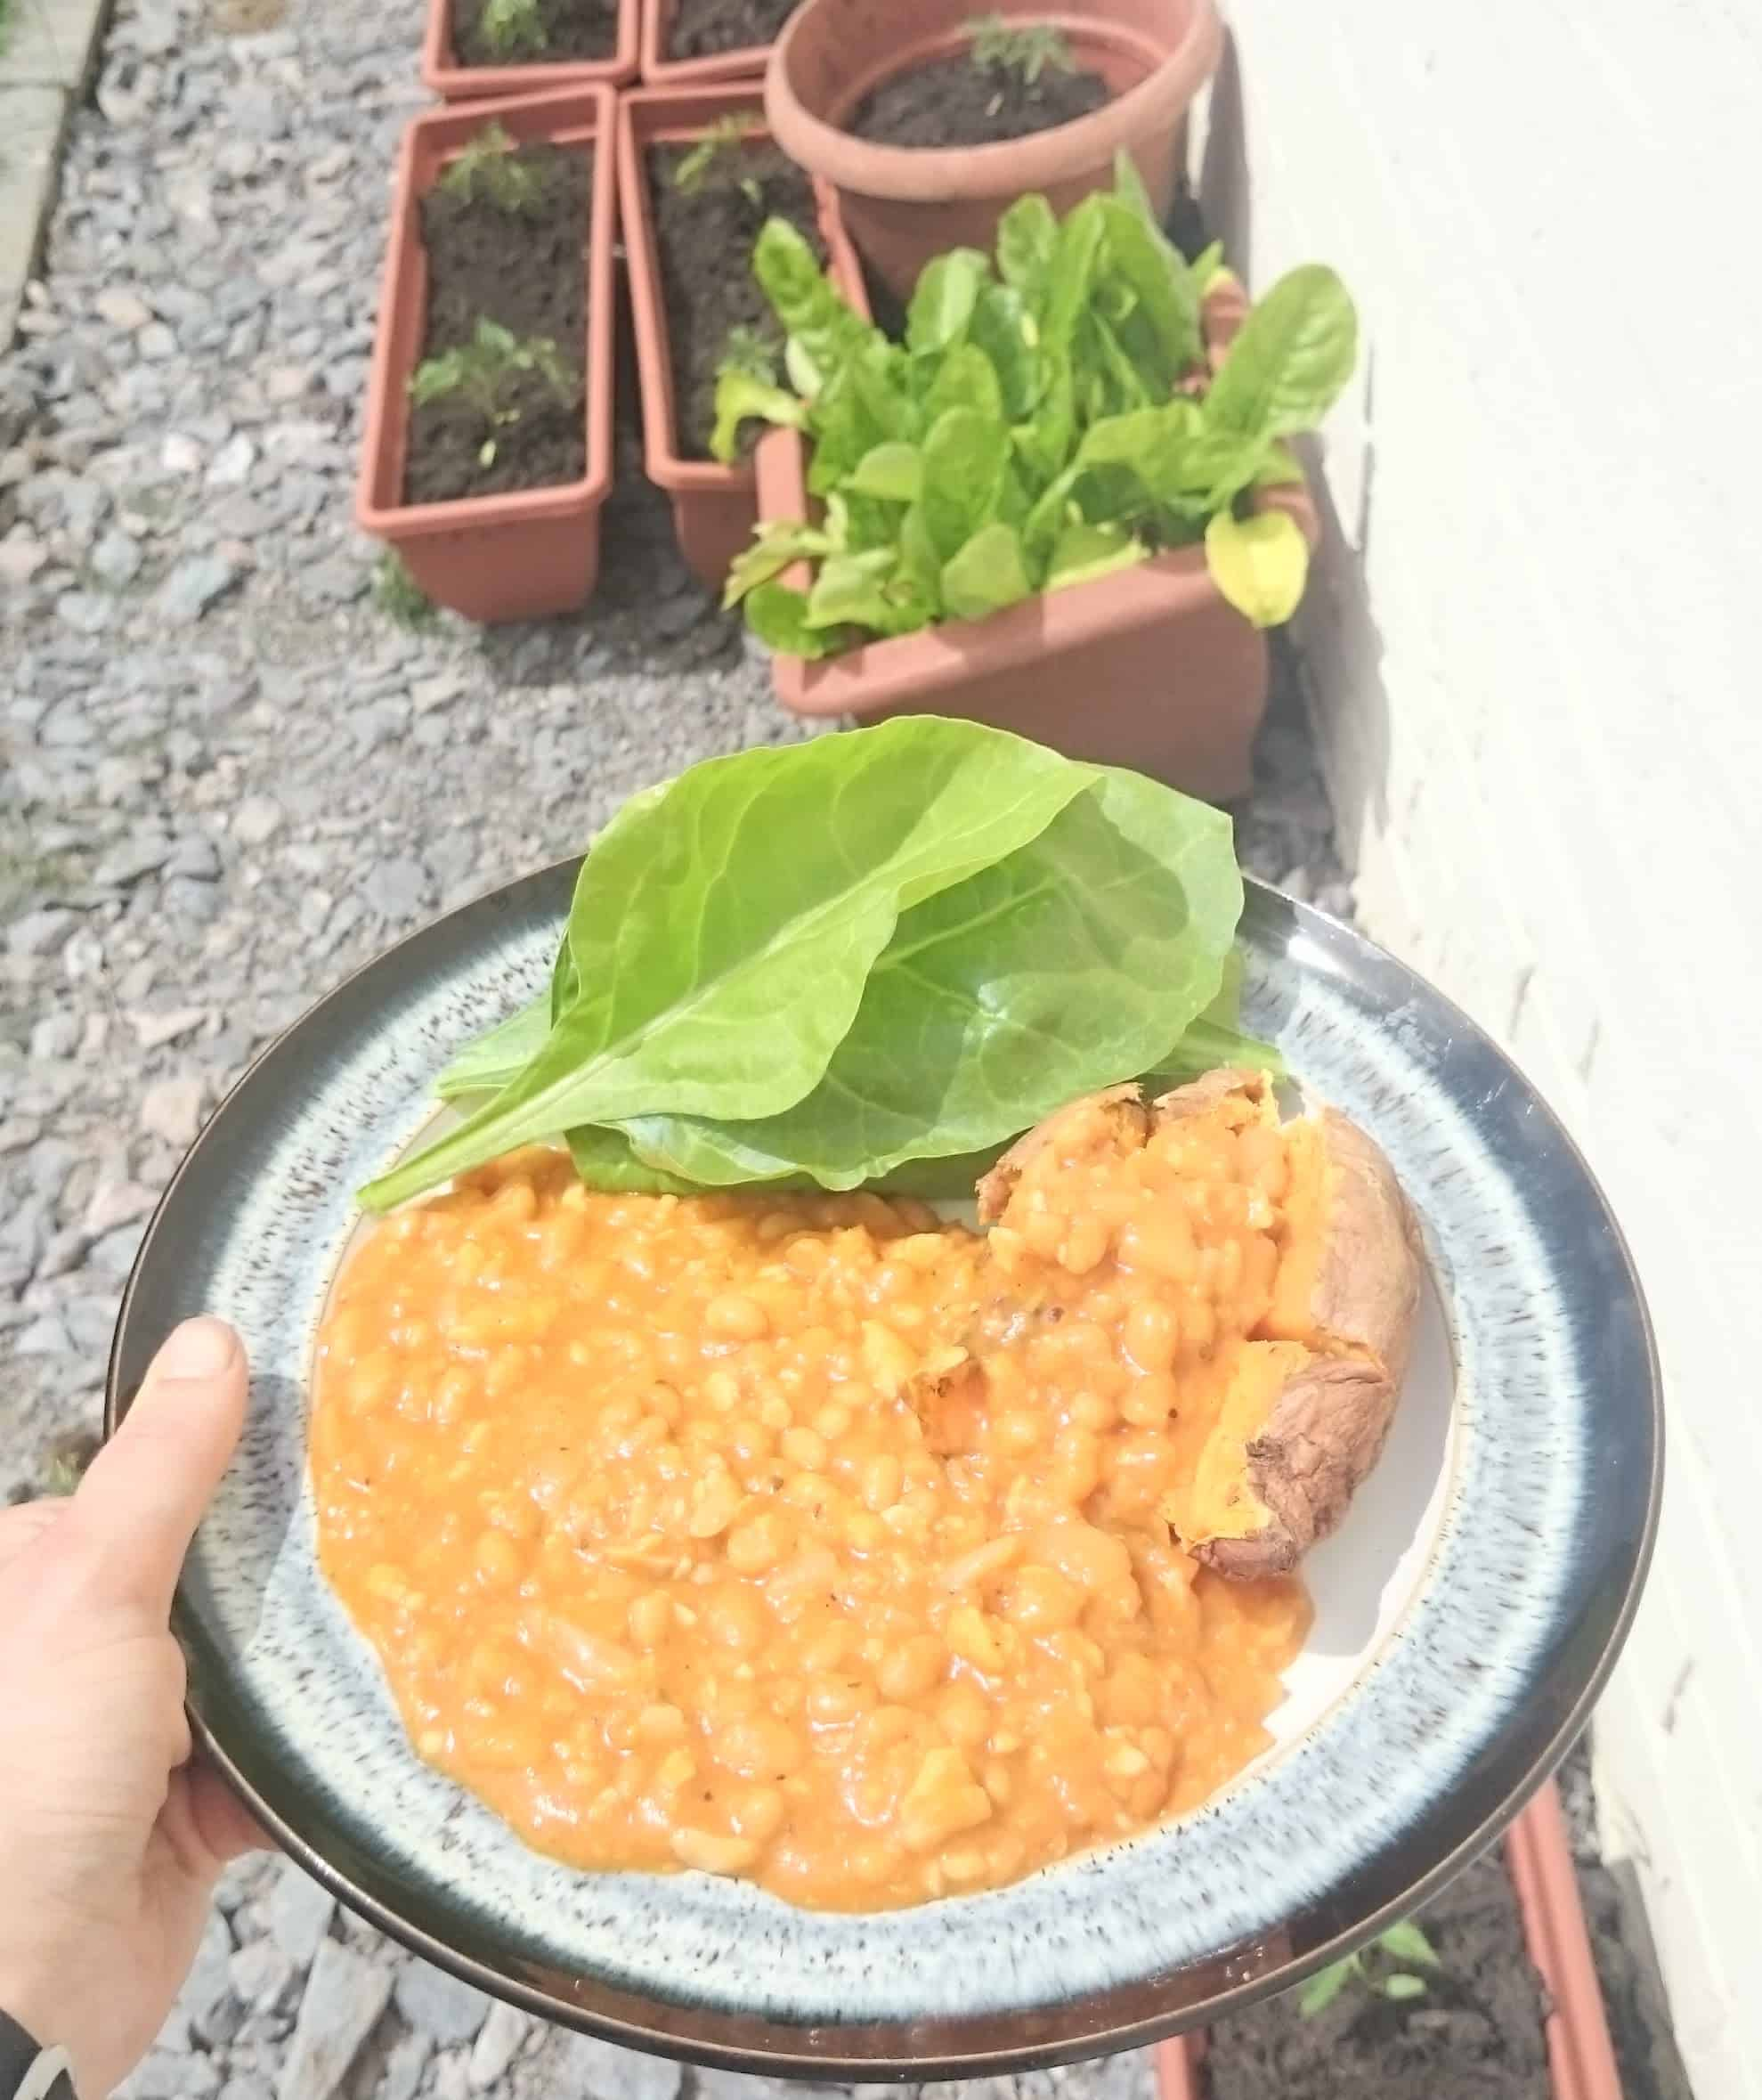 Super Cheap, Quick & Low Syn Slimming World Friendly Fish, Baked Bean & Mayflower Curry Recipe – Serves 2